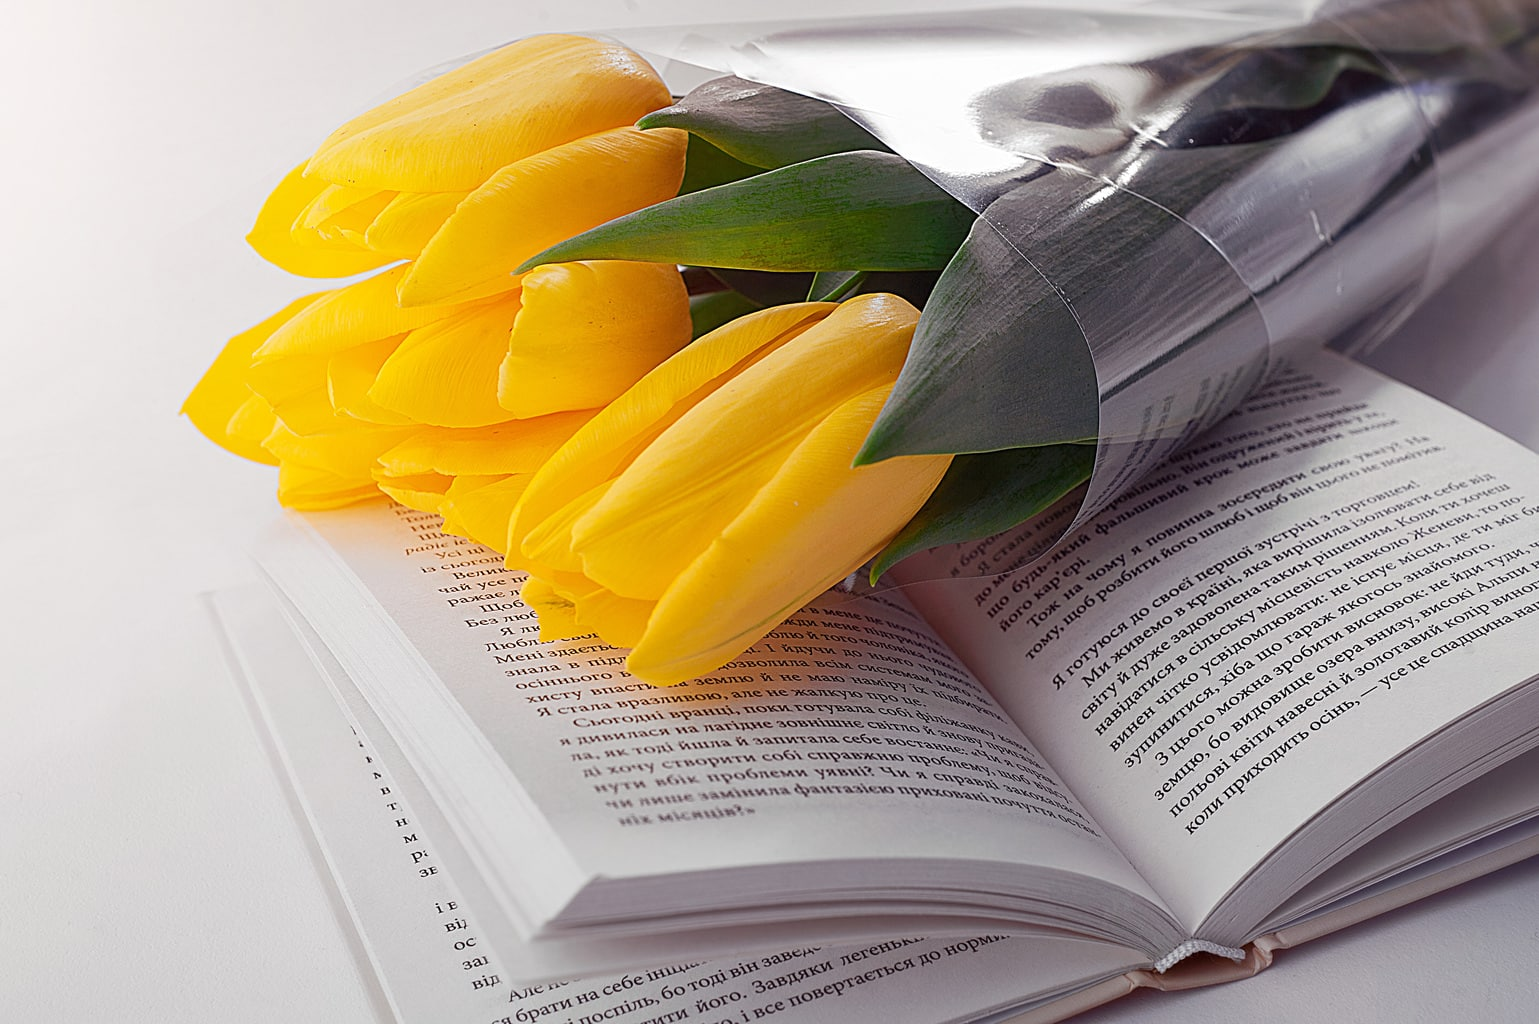 Summer book recommendations for different personality types - picture of book with tulips on top